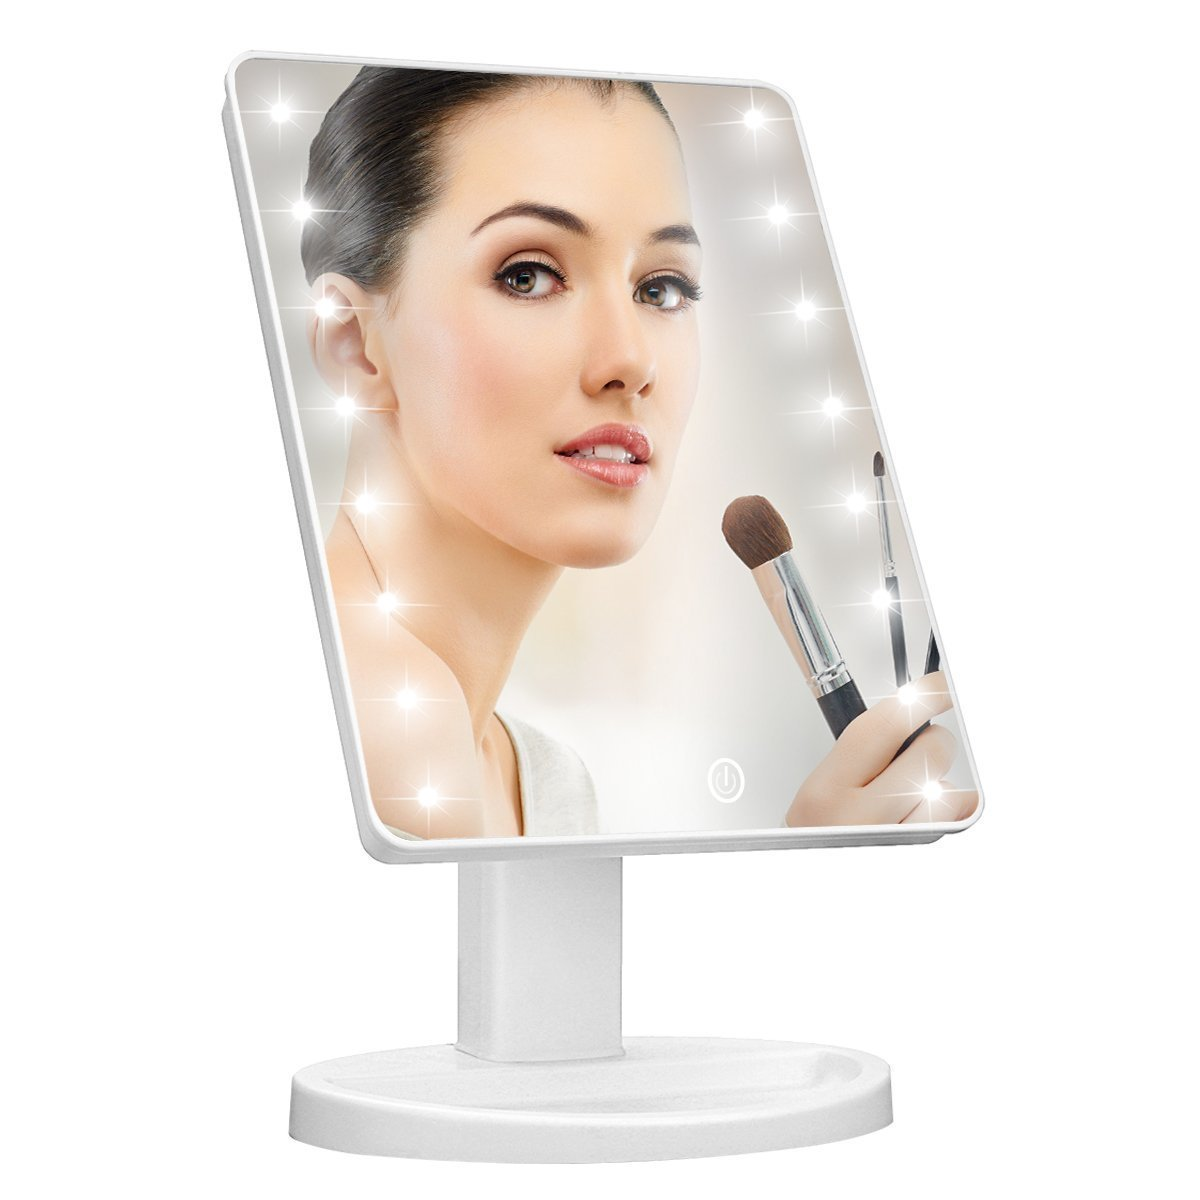 Lighted Makeup Mirror,Natural Daylight Makeup Vanity Mirror with 16 LED lights & Touch Screen Dimming,Spot Mirror with Dual Power Supply Countertop Cosmetic Mirror (White)